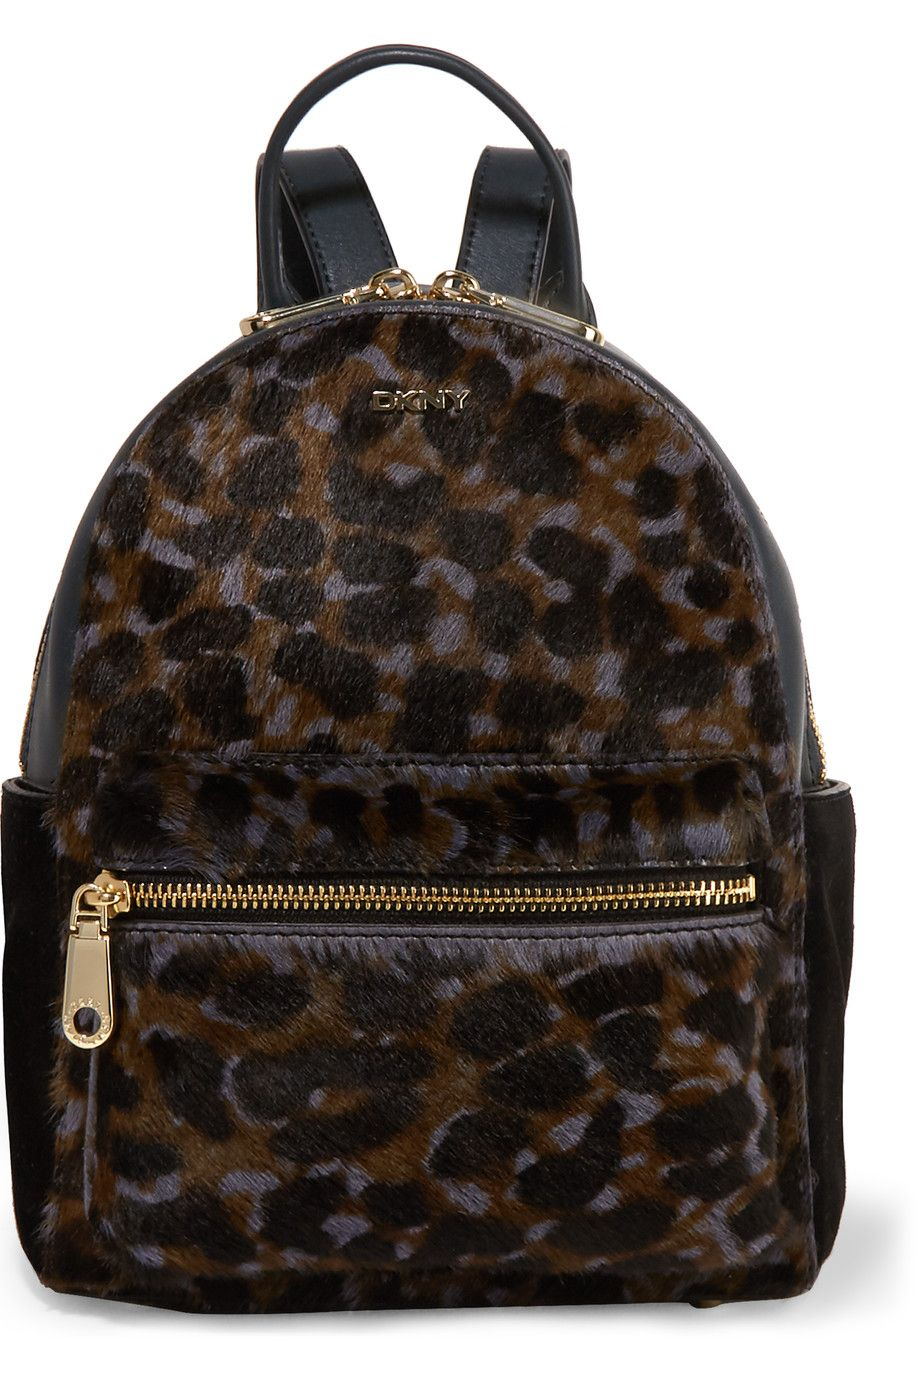 7e171475c2 DKNY Leopard-Print Calf Hair And Leather Backpack.  dkny  bags  glitter   fur  backpacks  suede